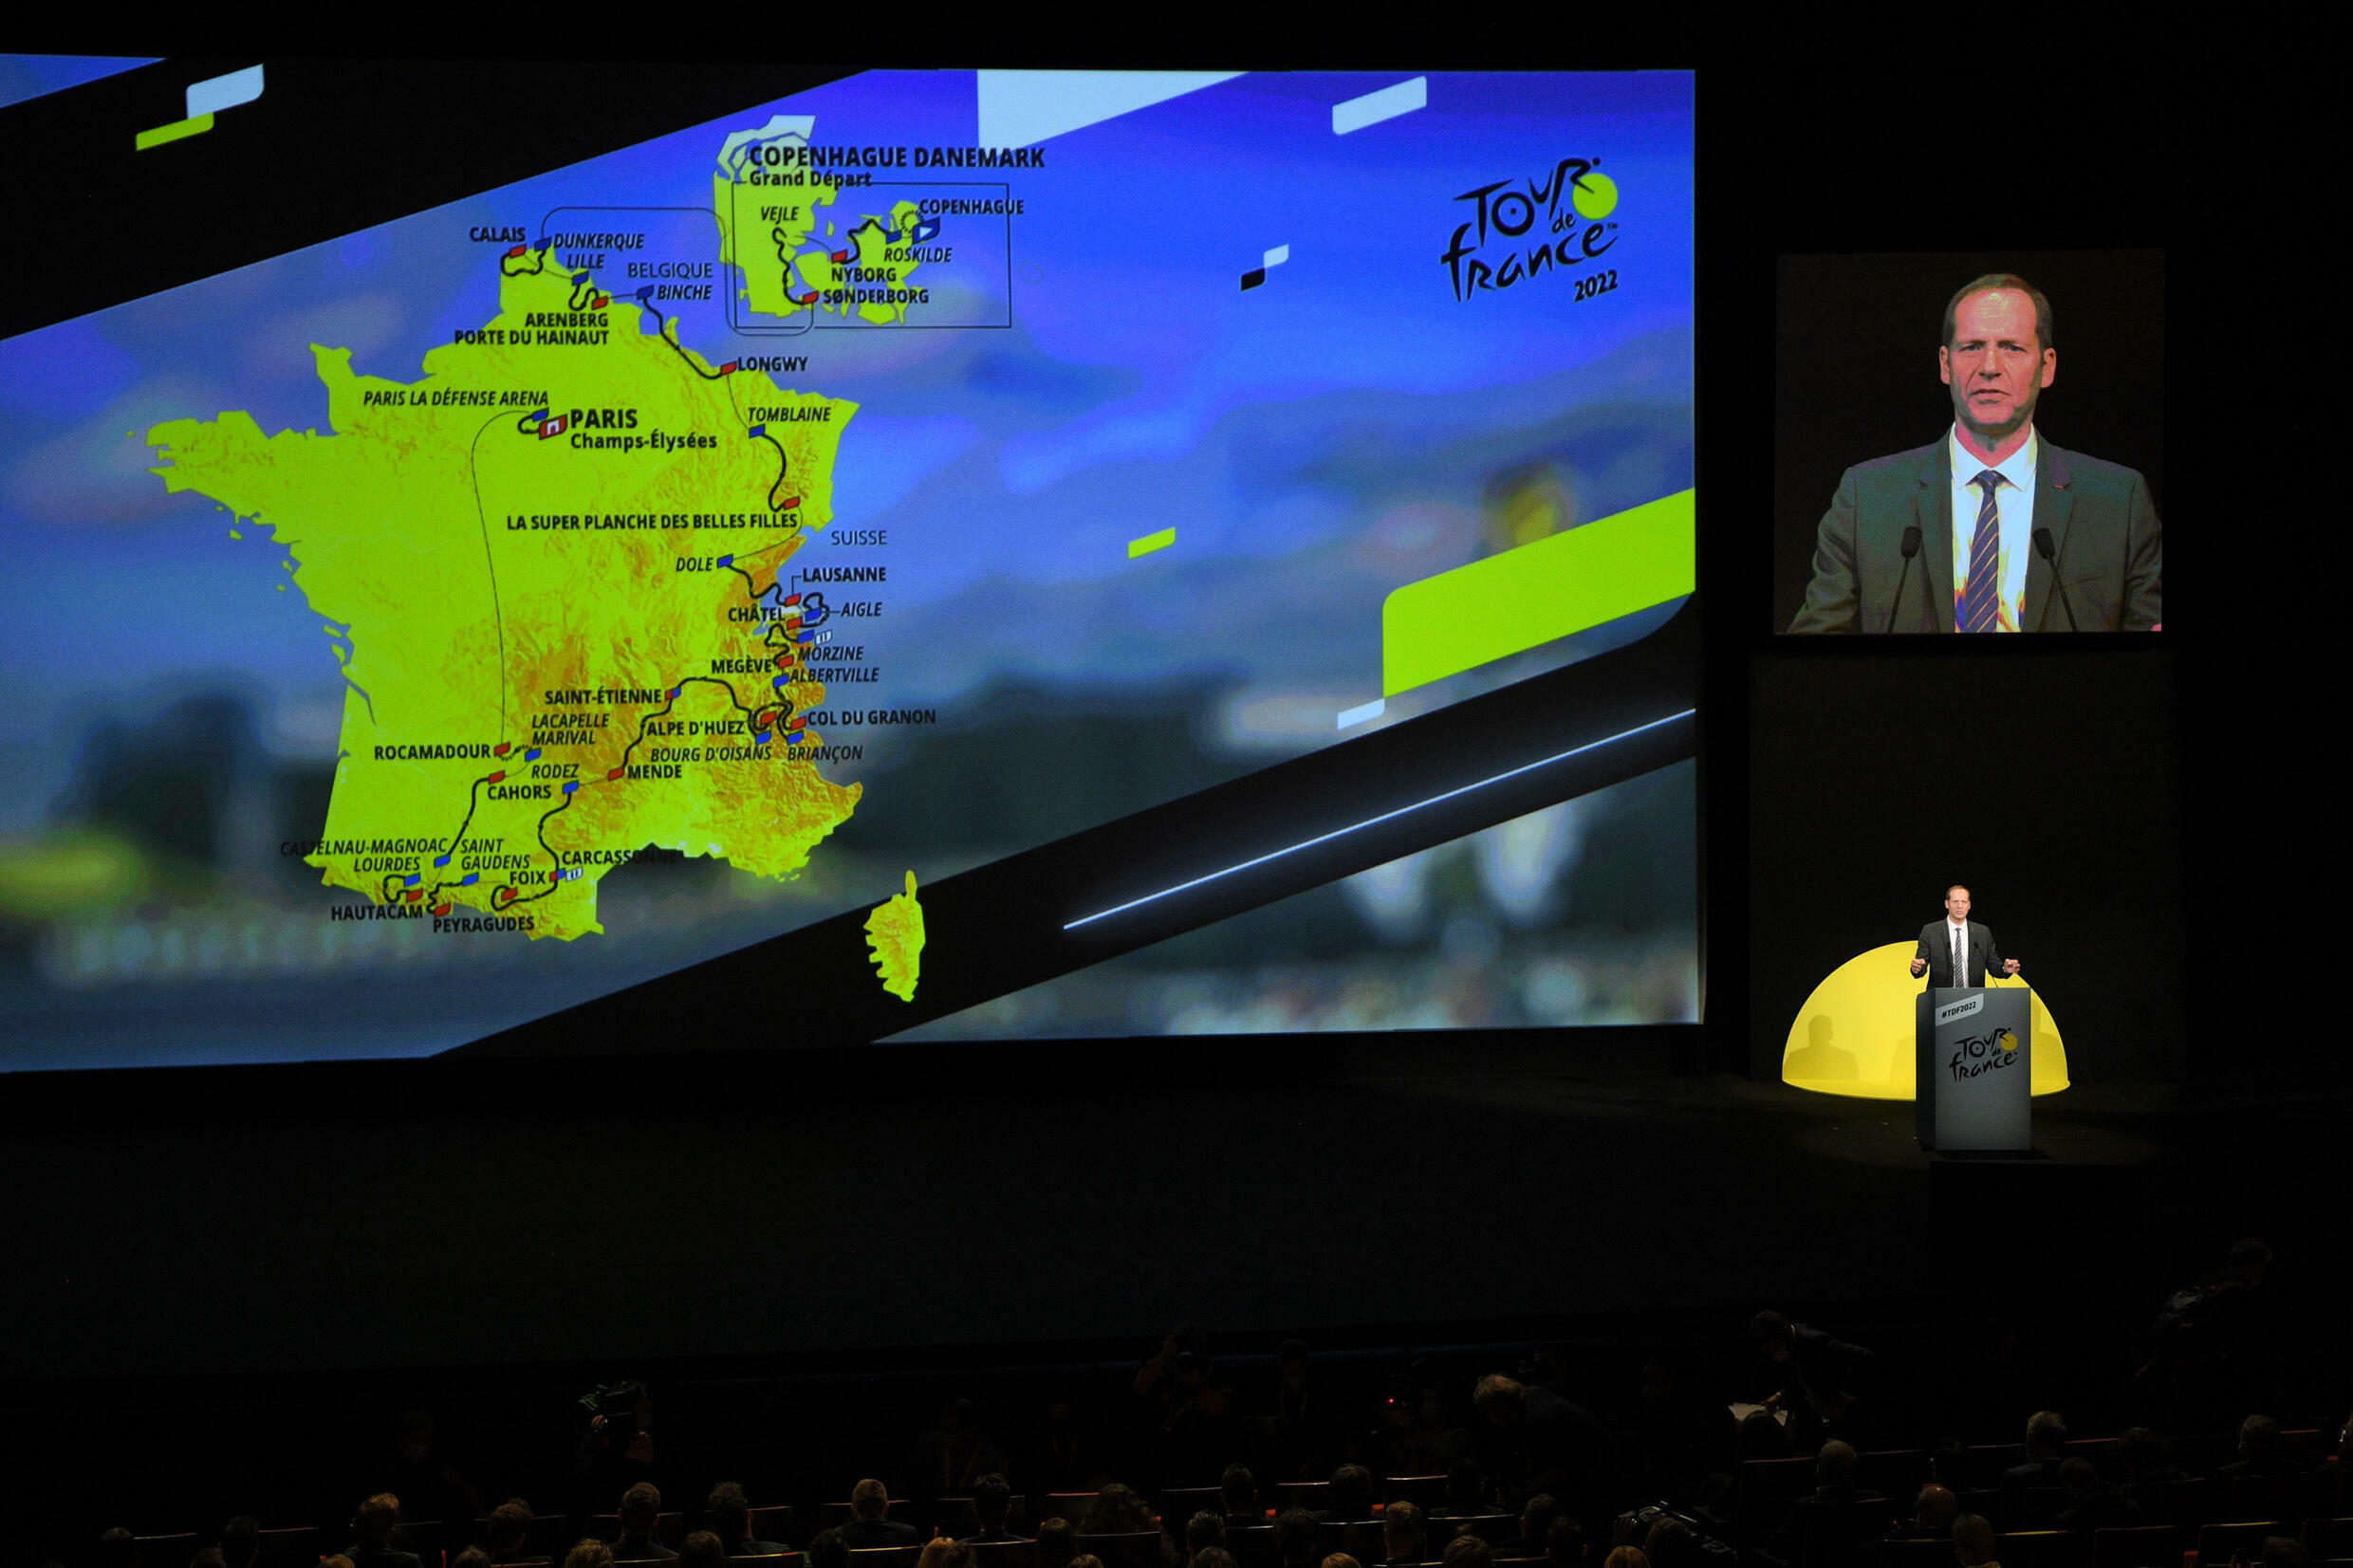 Tour de France director Christian Prudhomme speaks during the official presentation of the 2022 edition, on October 14, 2021 in Paris